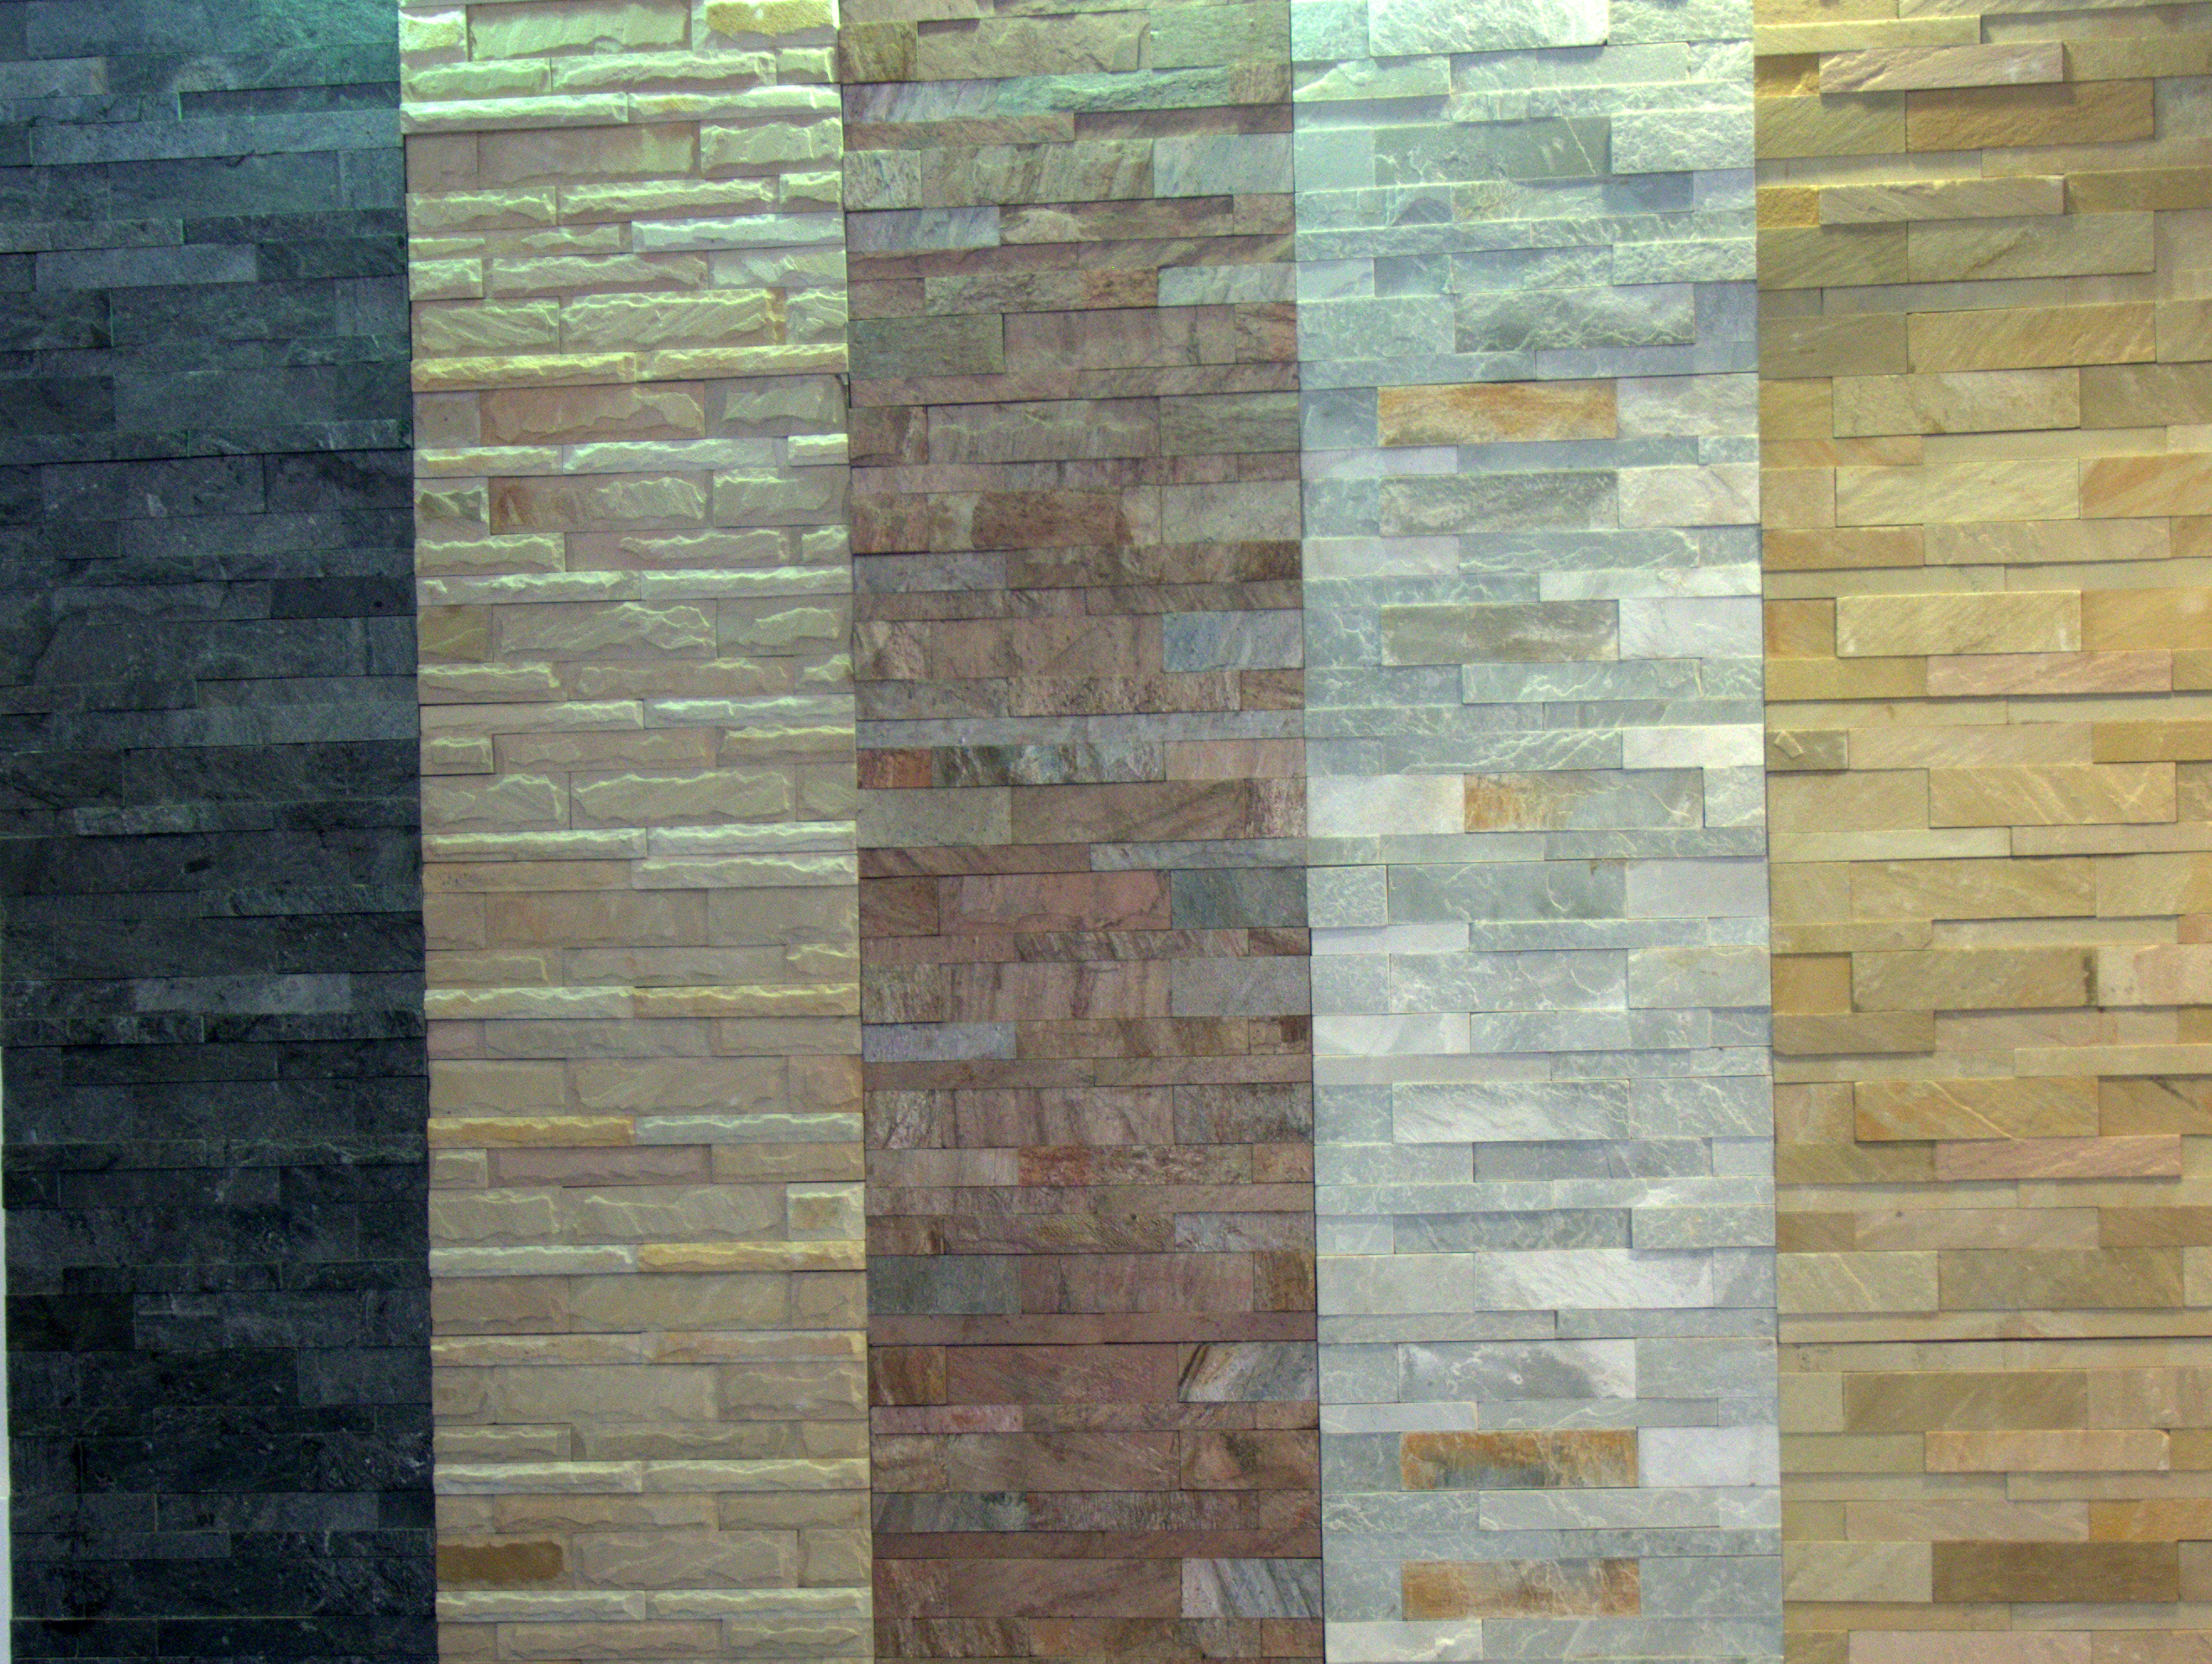 Stone ideas stone floor stone tiles stone cladding stone grey slate wall tiles white quartzite wall tiles mint sandstone wall iles copper dailygadgetfo Images